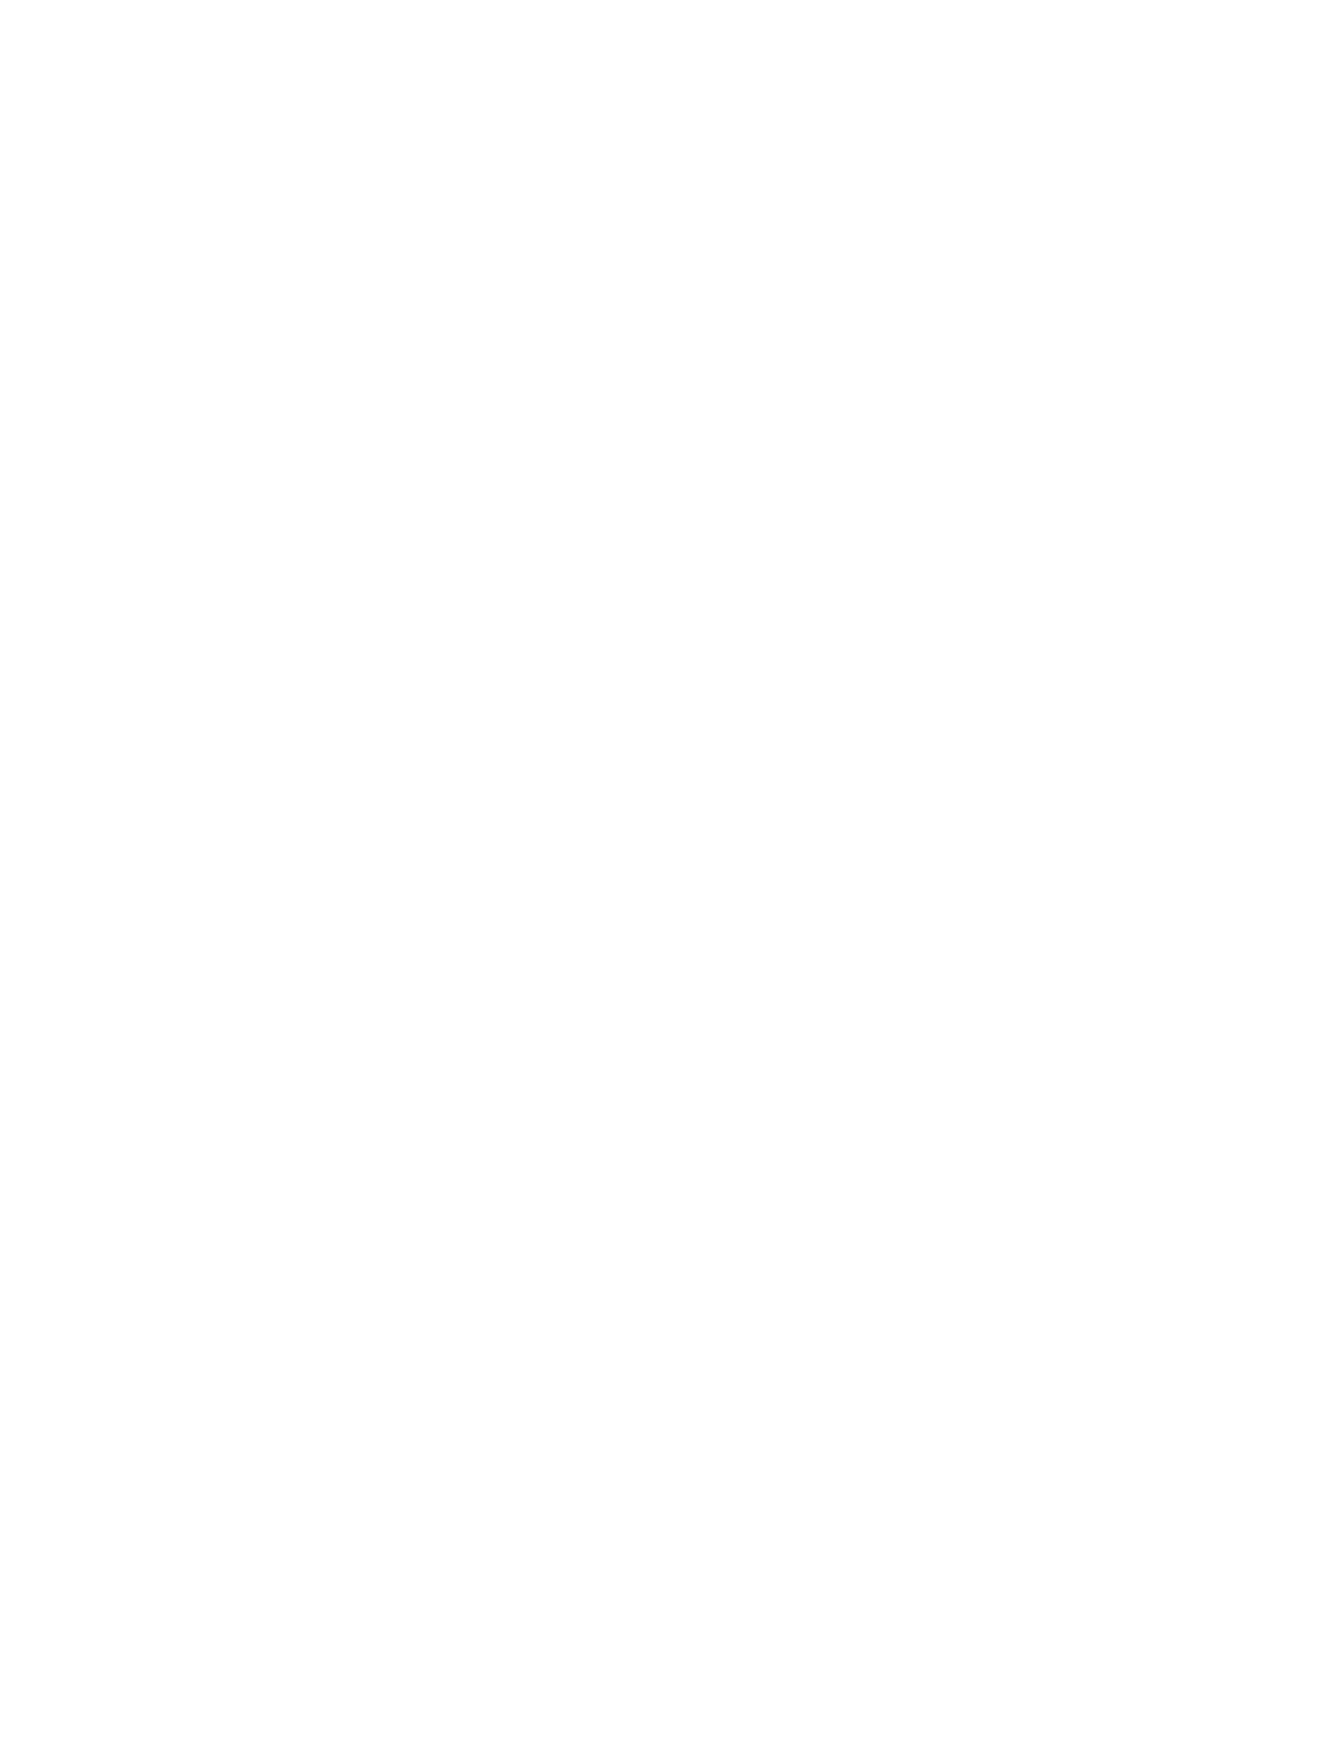 Grady Veterinary Hospital